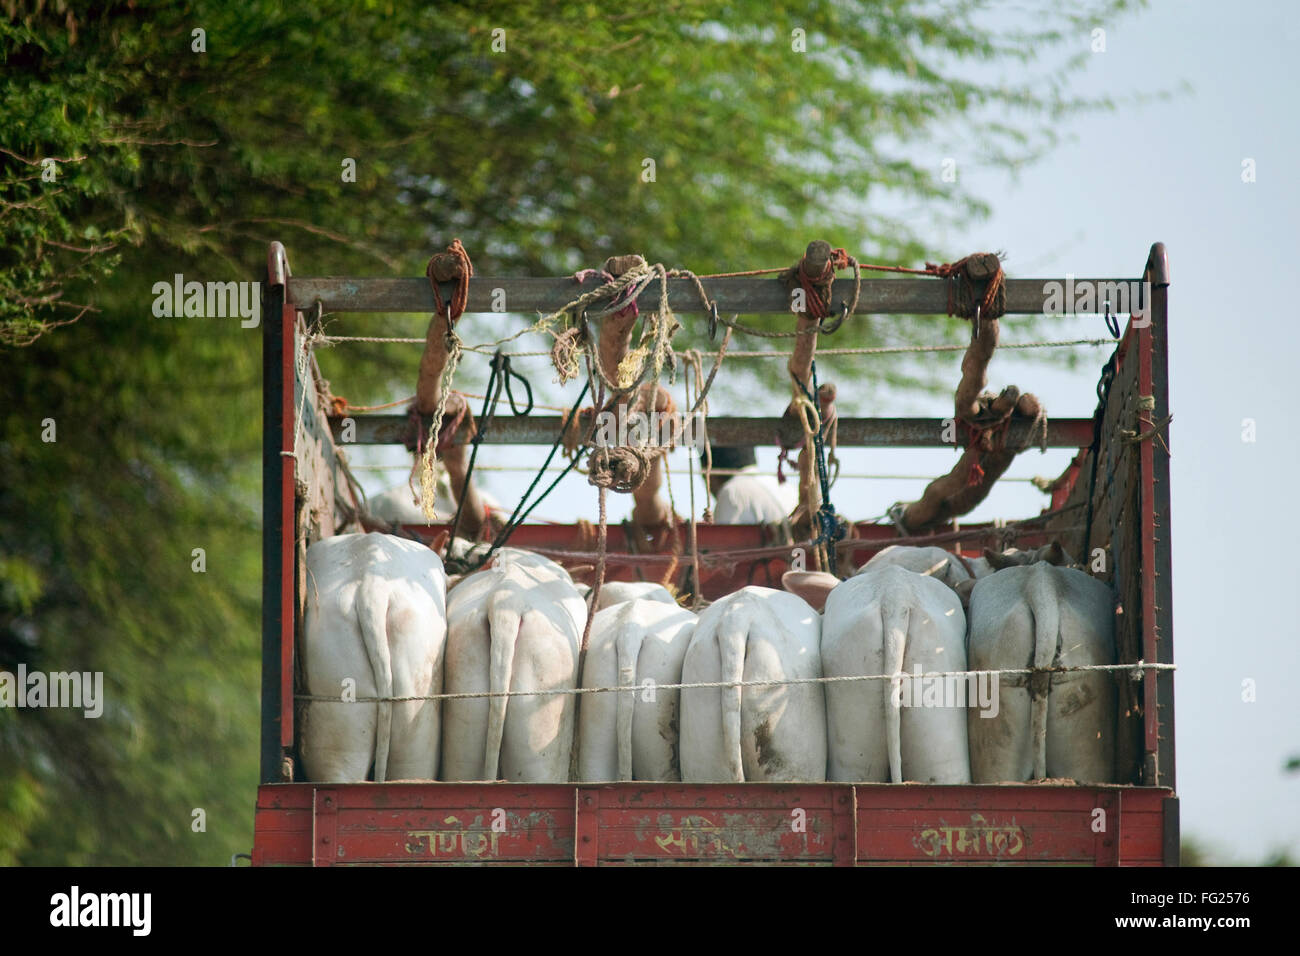 Cruelty transferring animal in truck ; Maharashtra ; India - Stock Image